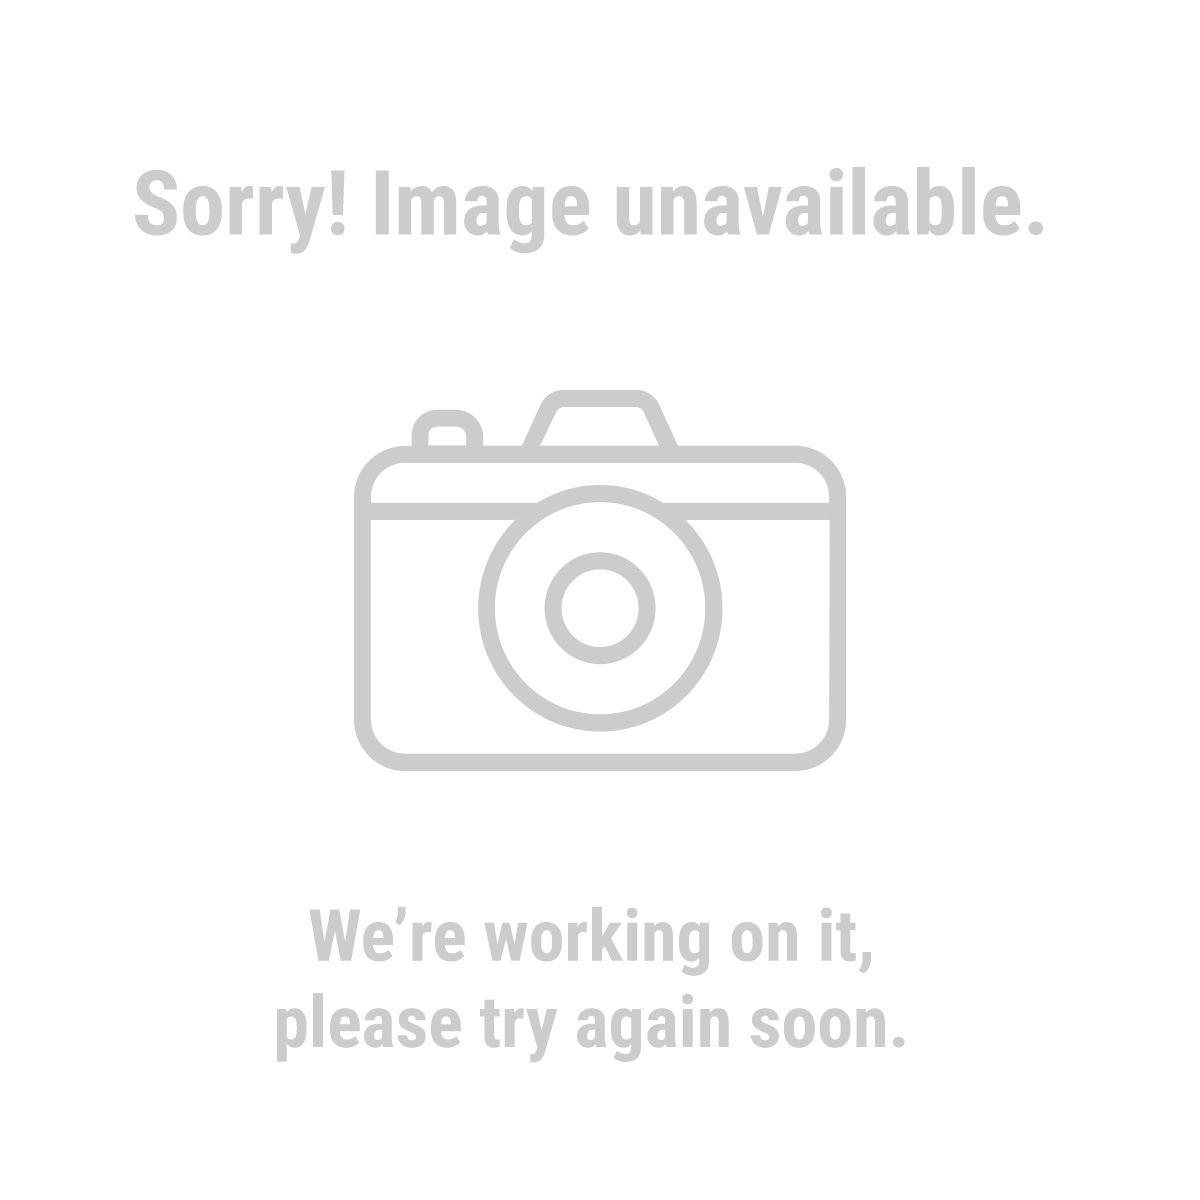 3 Watt Led Rechargeable Cordless Spotlight